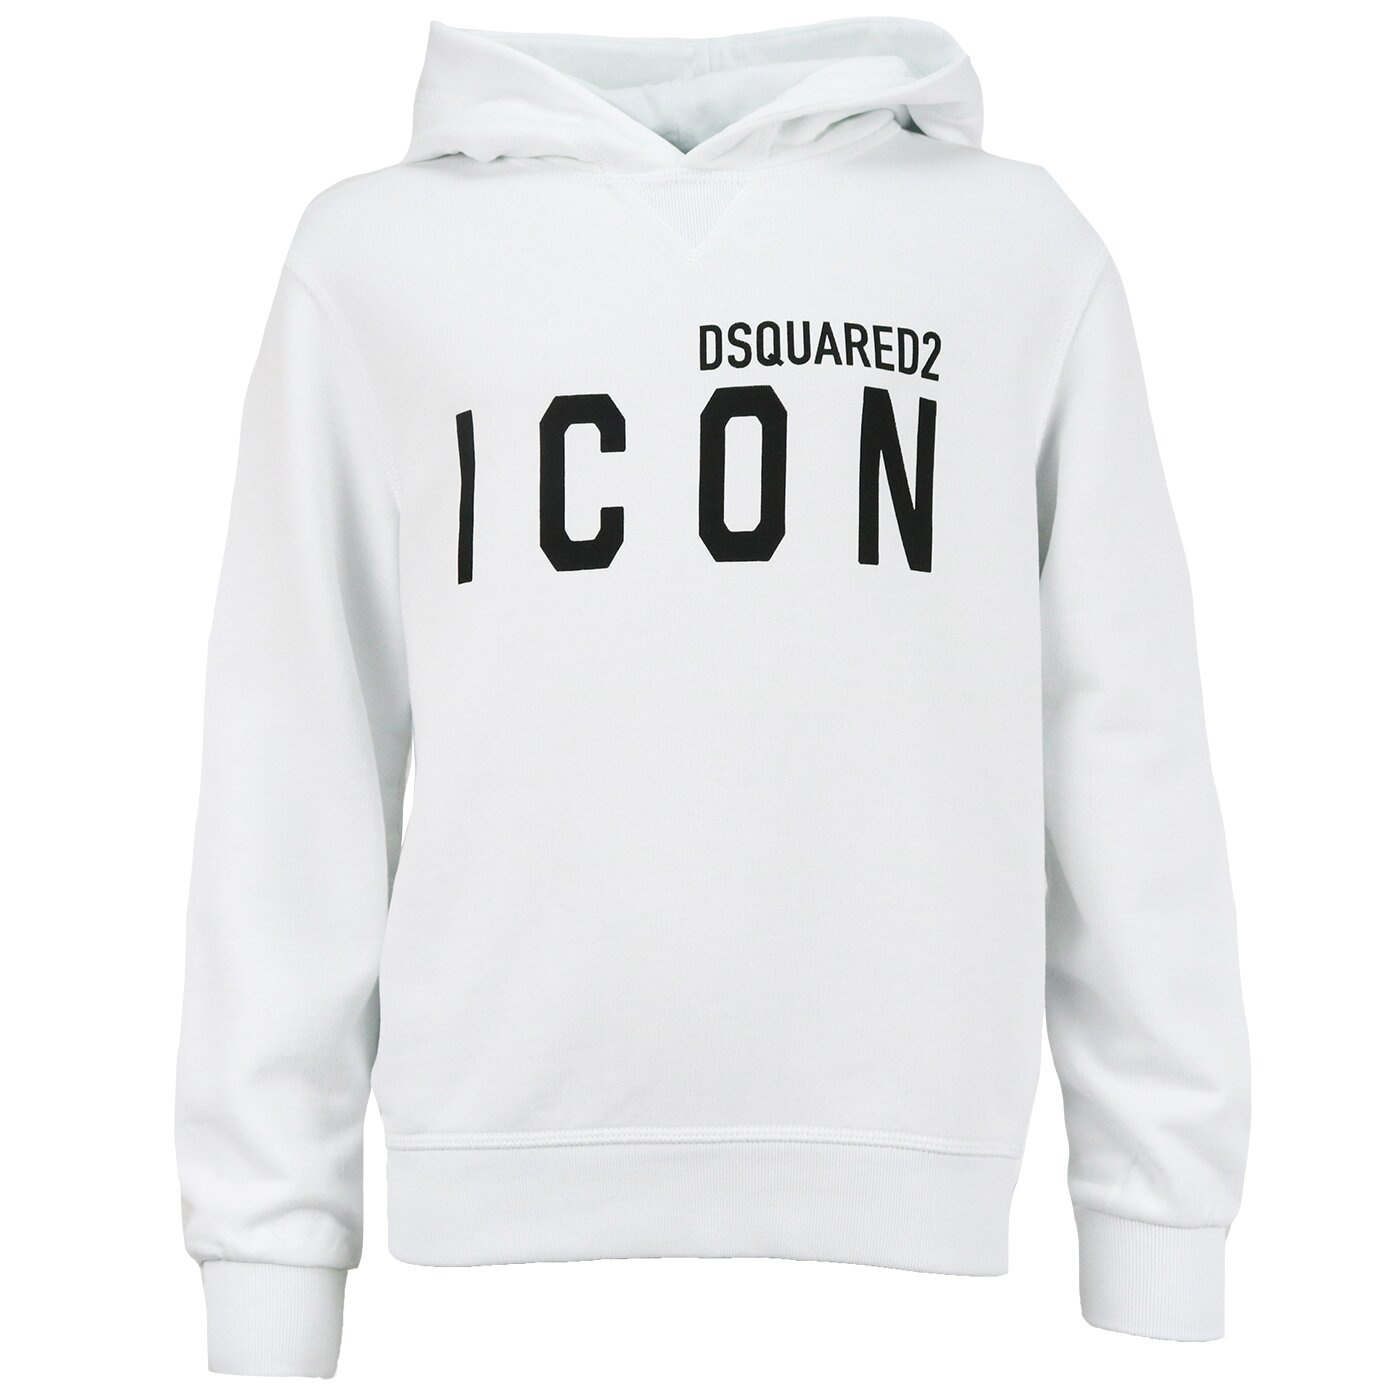 Dsquared2 Hoody Icon Wit Relax fit